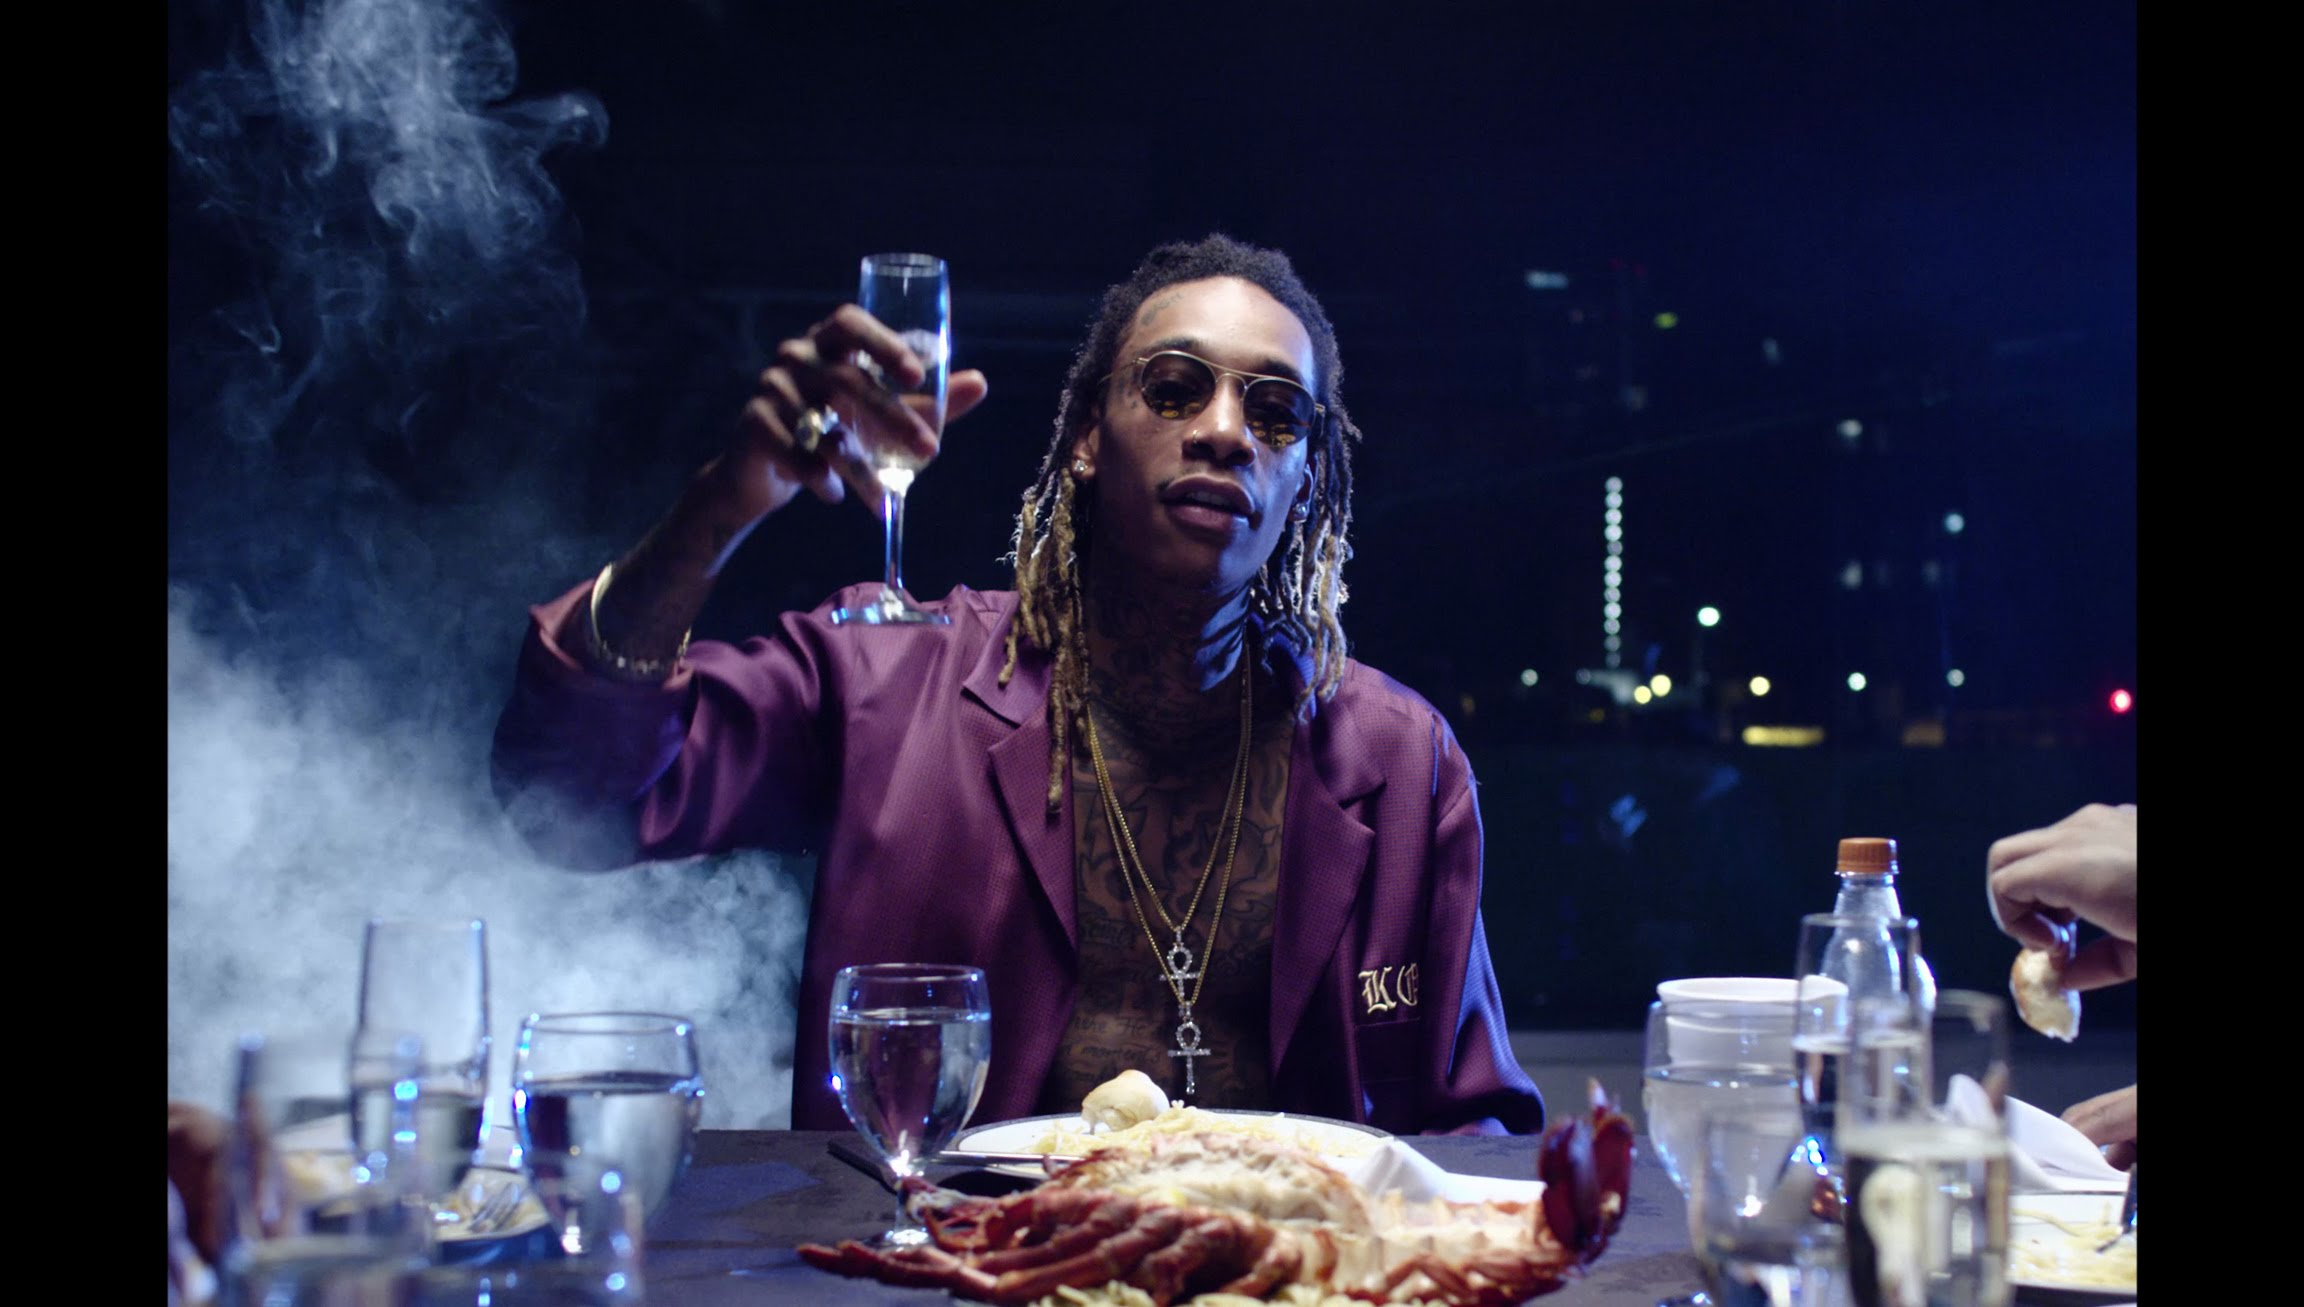 MUSIC: Wiz Khalifa – Elevated [Official Video]